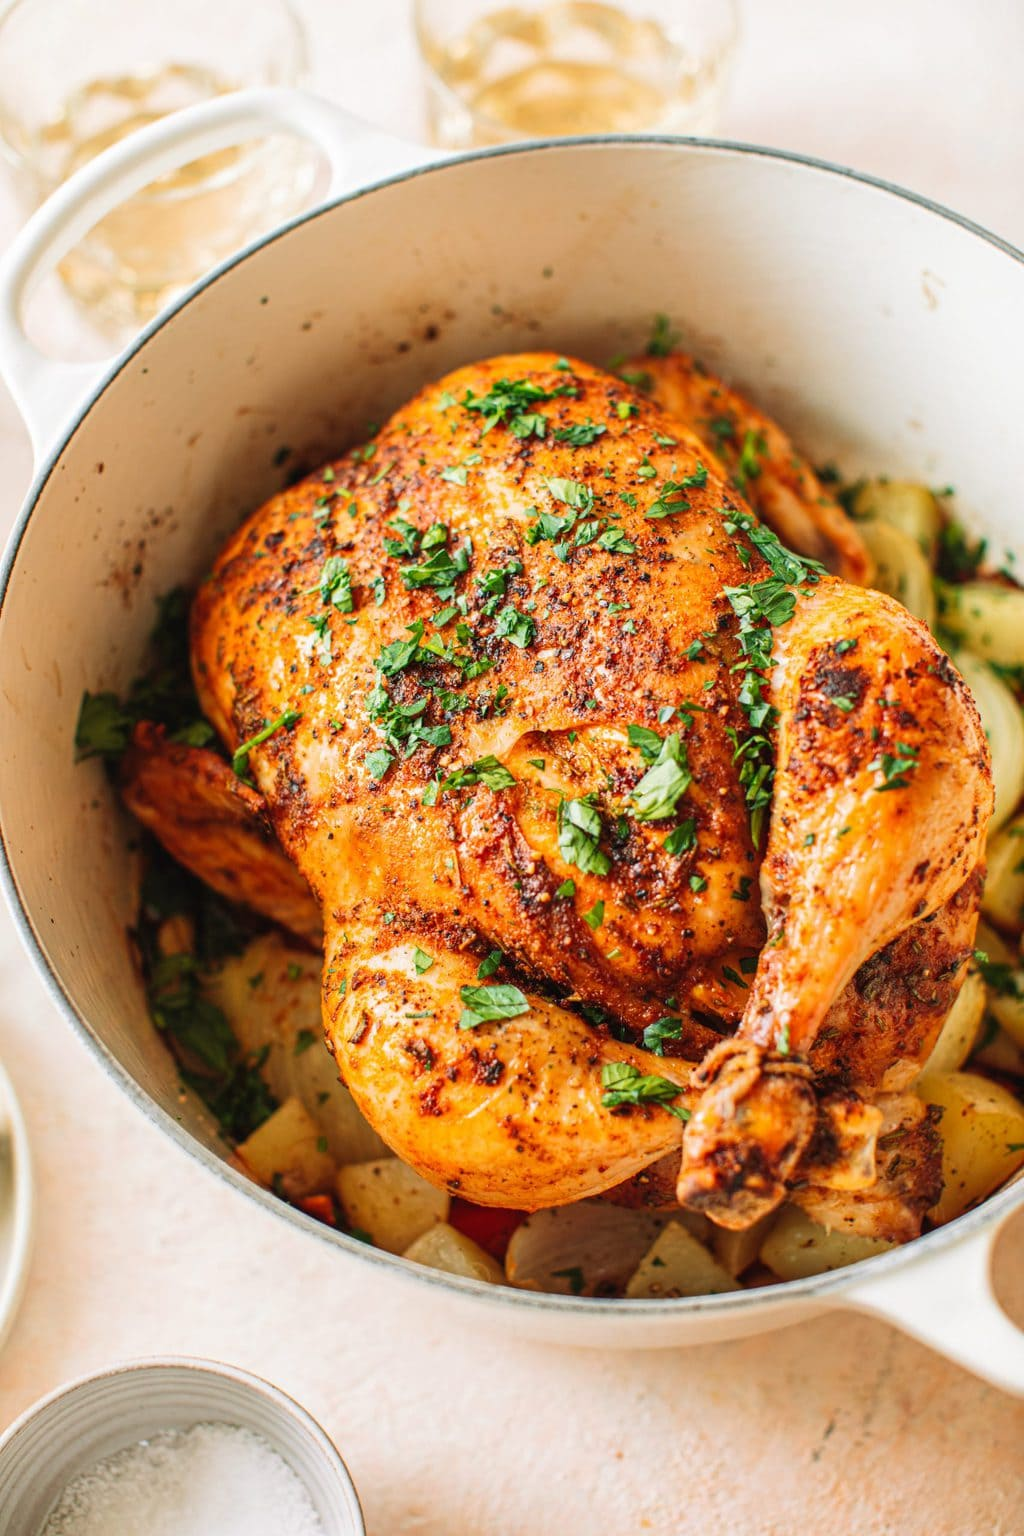 Top shot of roast chicken in dutch oven garnished with parsley in large pot.